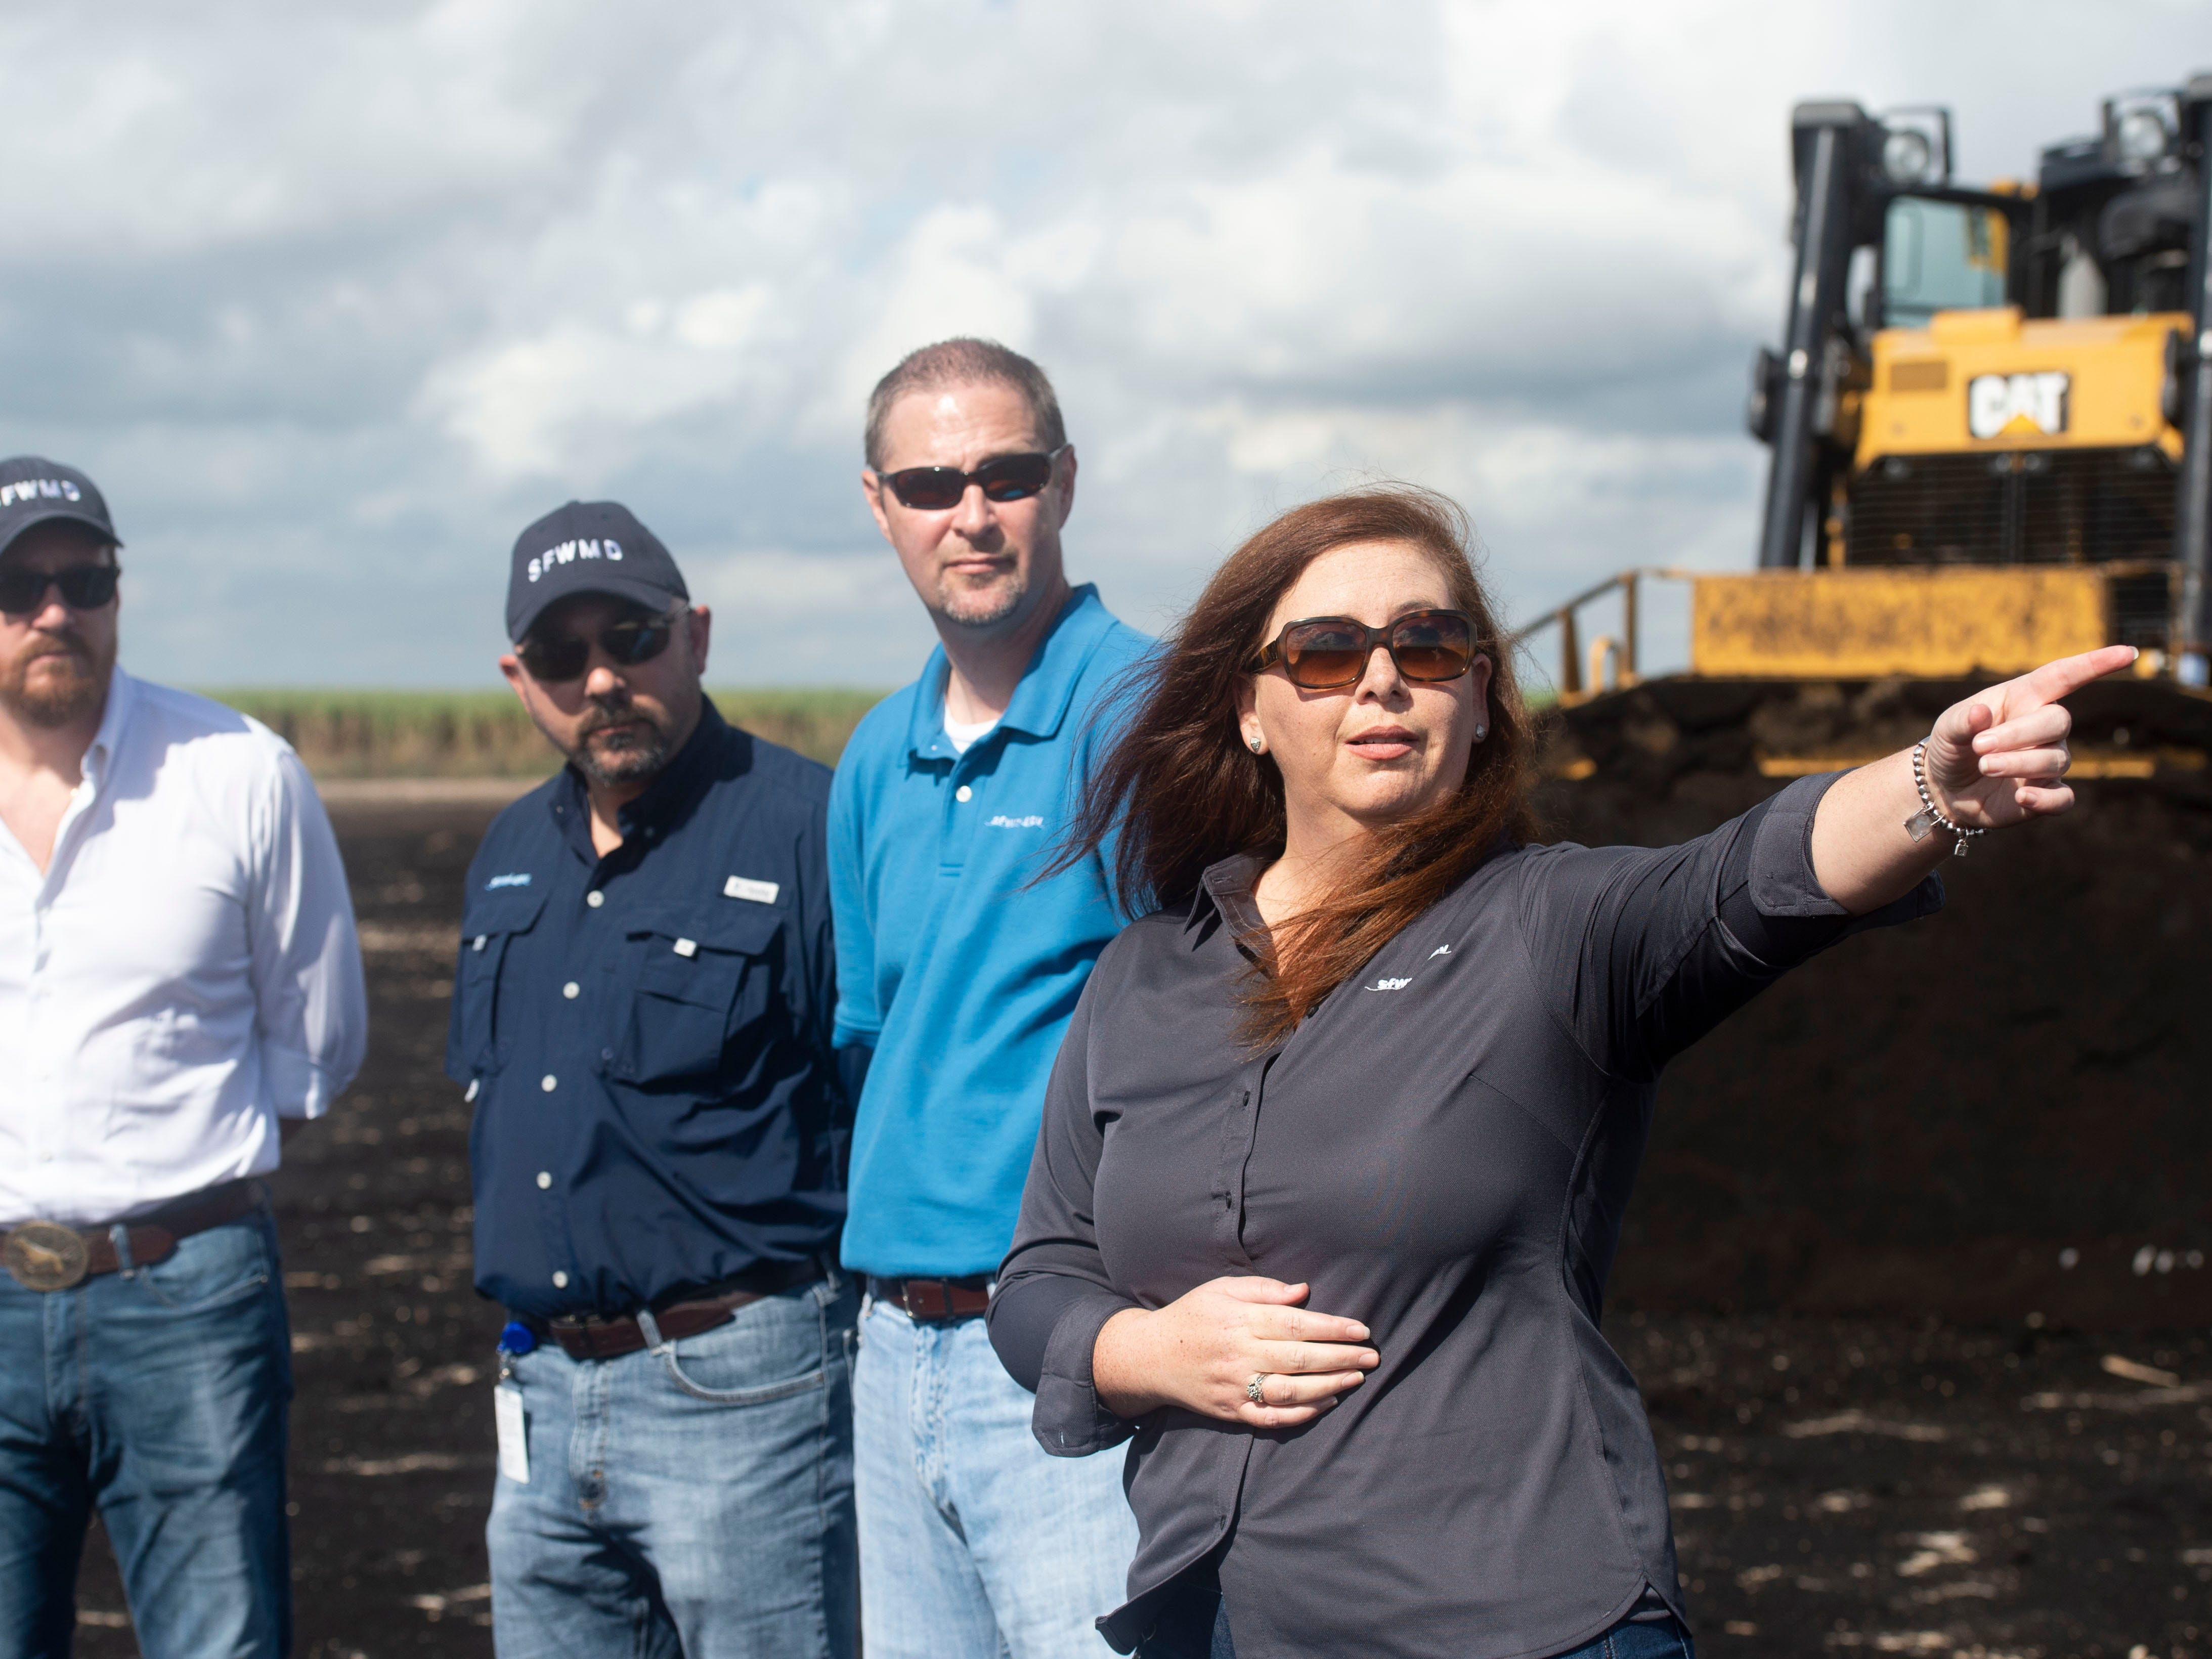 "South Florida Water Management District staff (from left), Federico Fernandez, board chairman; Ernie Marks, executive director; John Mitnik, chief engineer; and Eva Valez, director of Everglades policy and restoration, announced preliminary construction of the EAA reservoir on a 560-acre tract of land at a news conference Wednesday, Nov. 14, 2018 in western Palm Beach County. Fernandez said the water management district is ""expediting this"" project because it's ""absolutely necessary"" to move forward with constructing the 23-foot deep, 10,100-acre reservoir that will be able to store up to 78.2 billion gallons of excess Lake Okeechobee water. ""Delaying is not an option,"" Fernandez said."